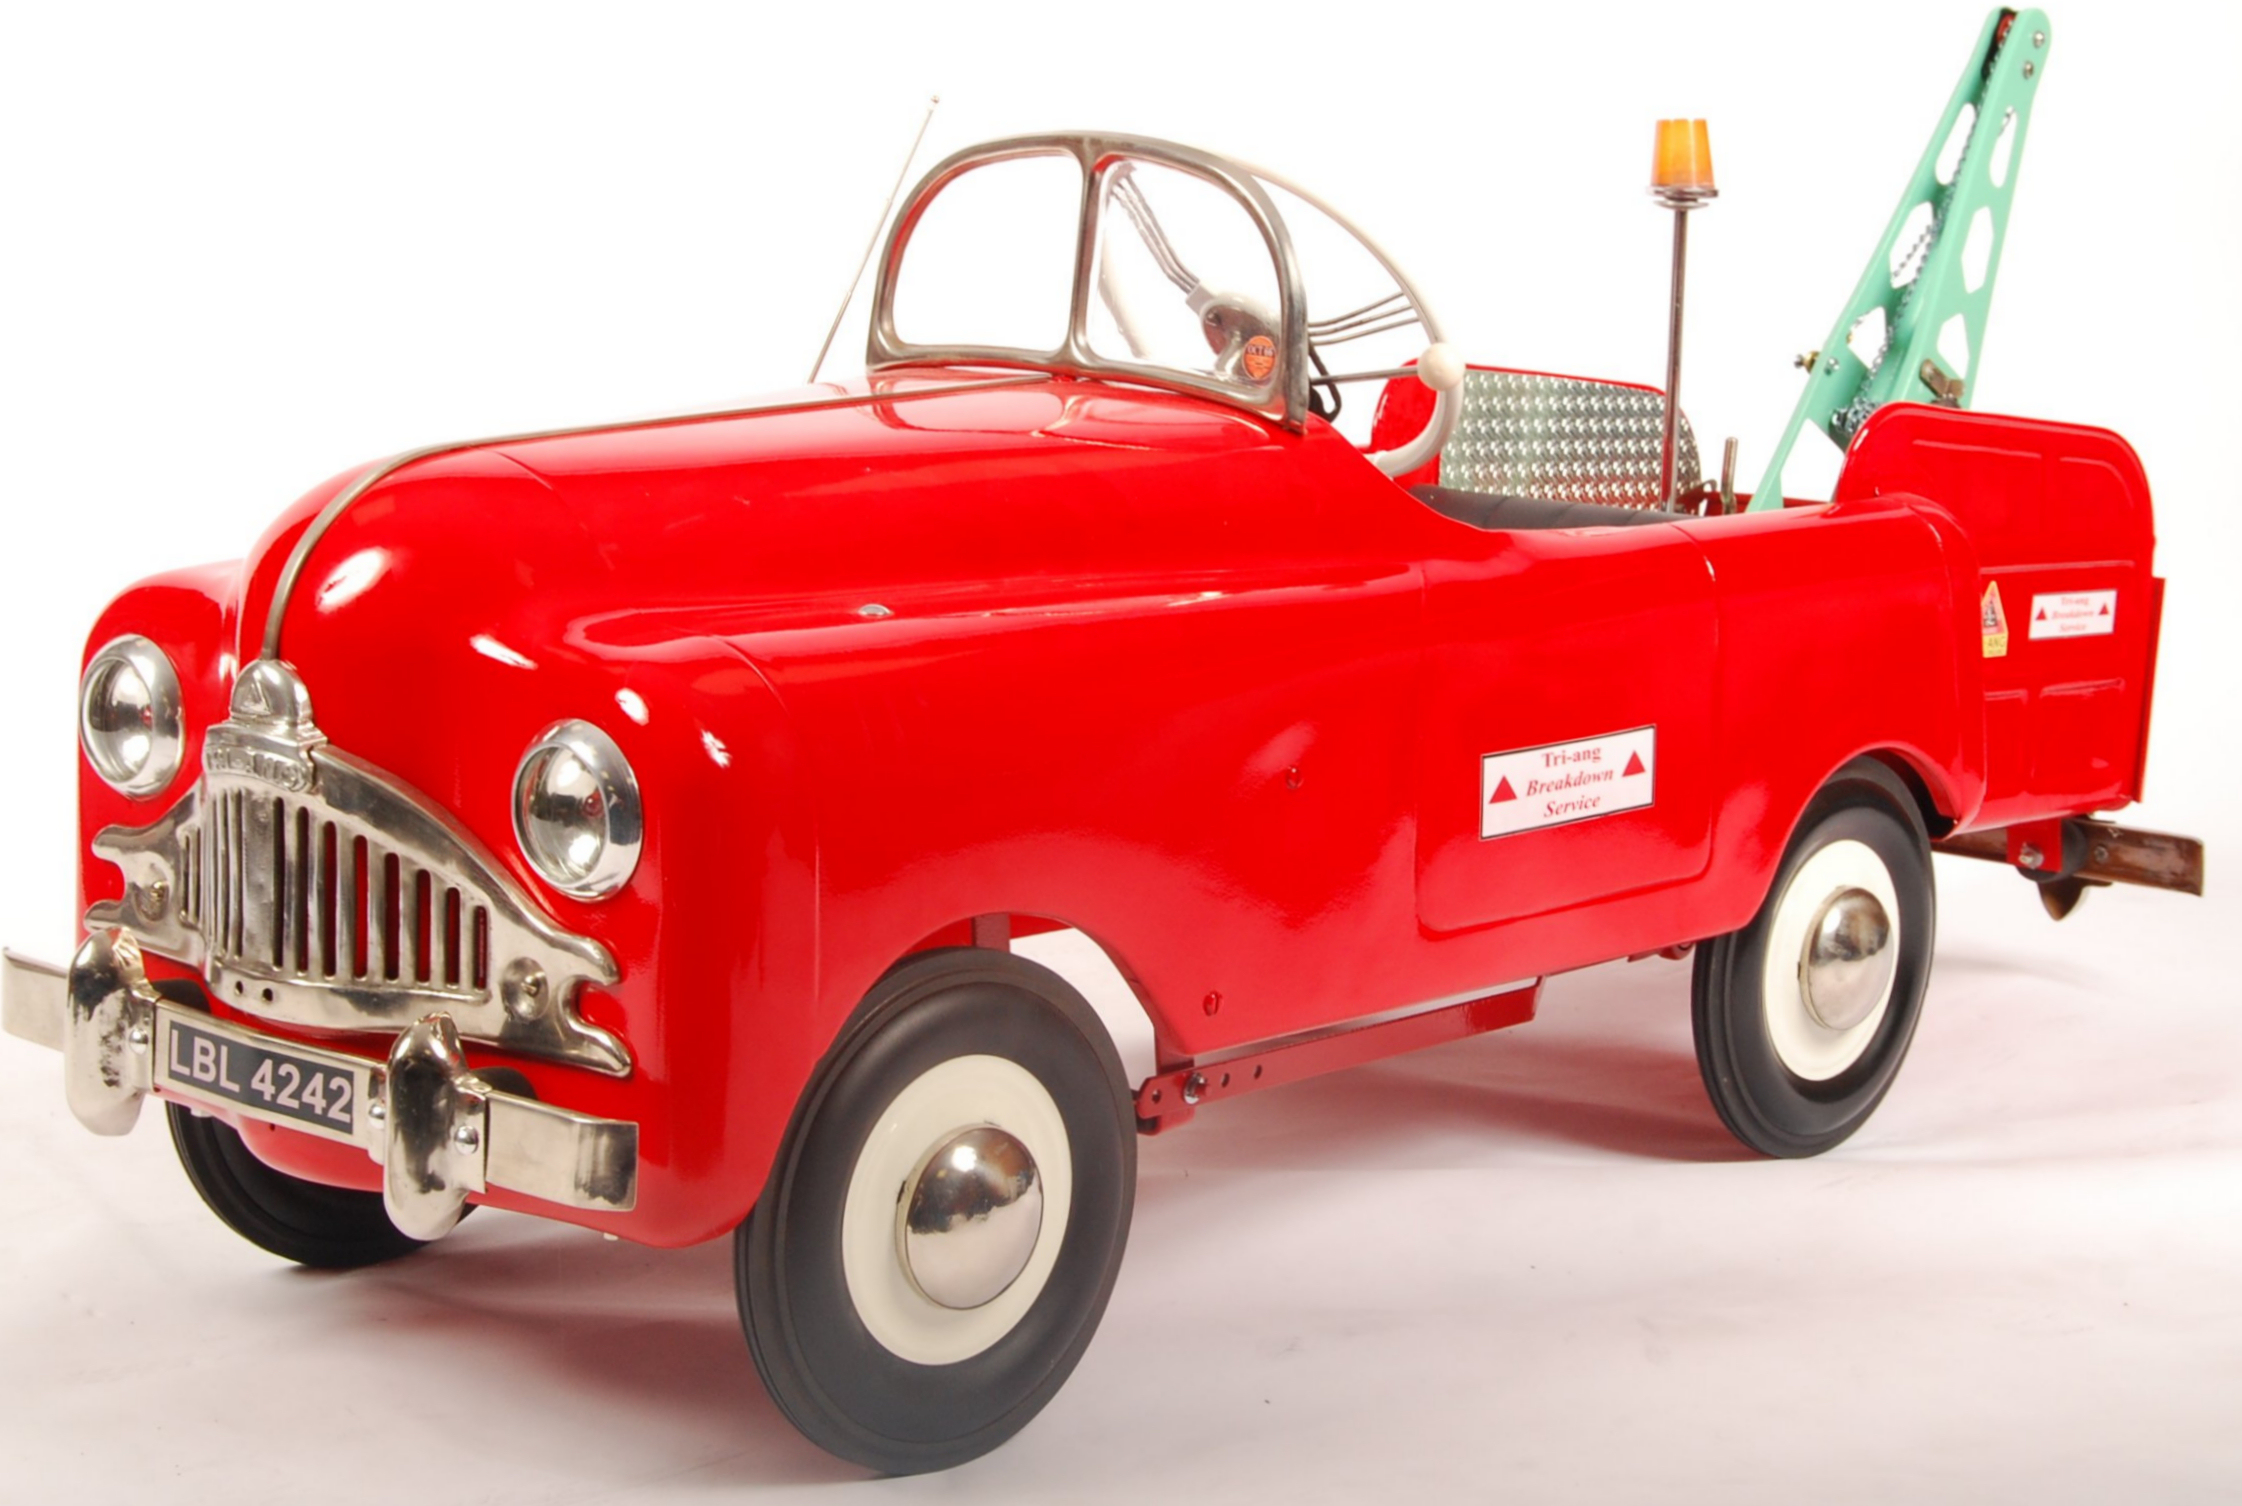 Lot 180 - INCREDIBLE RARE 1960'S TRIANG CENTURION BREAKDOWN